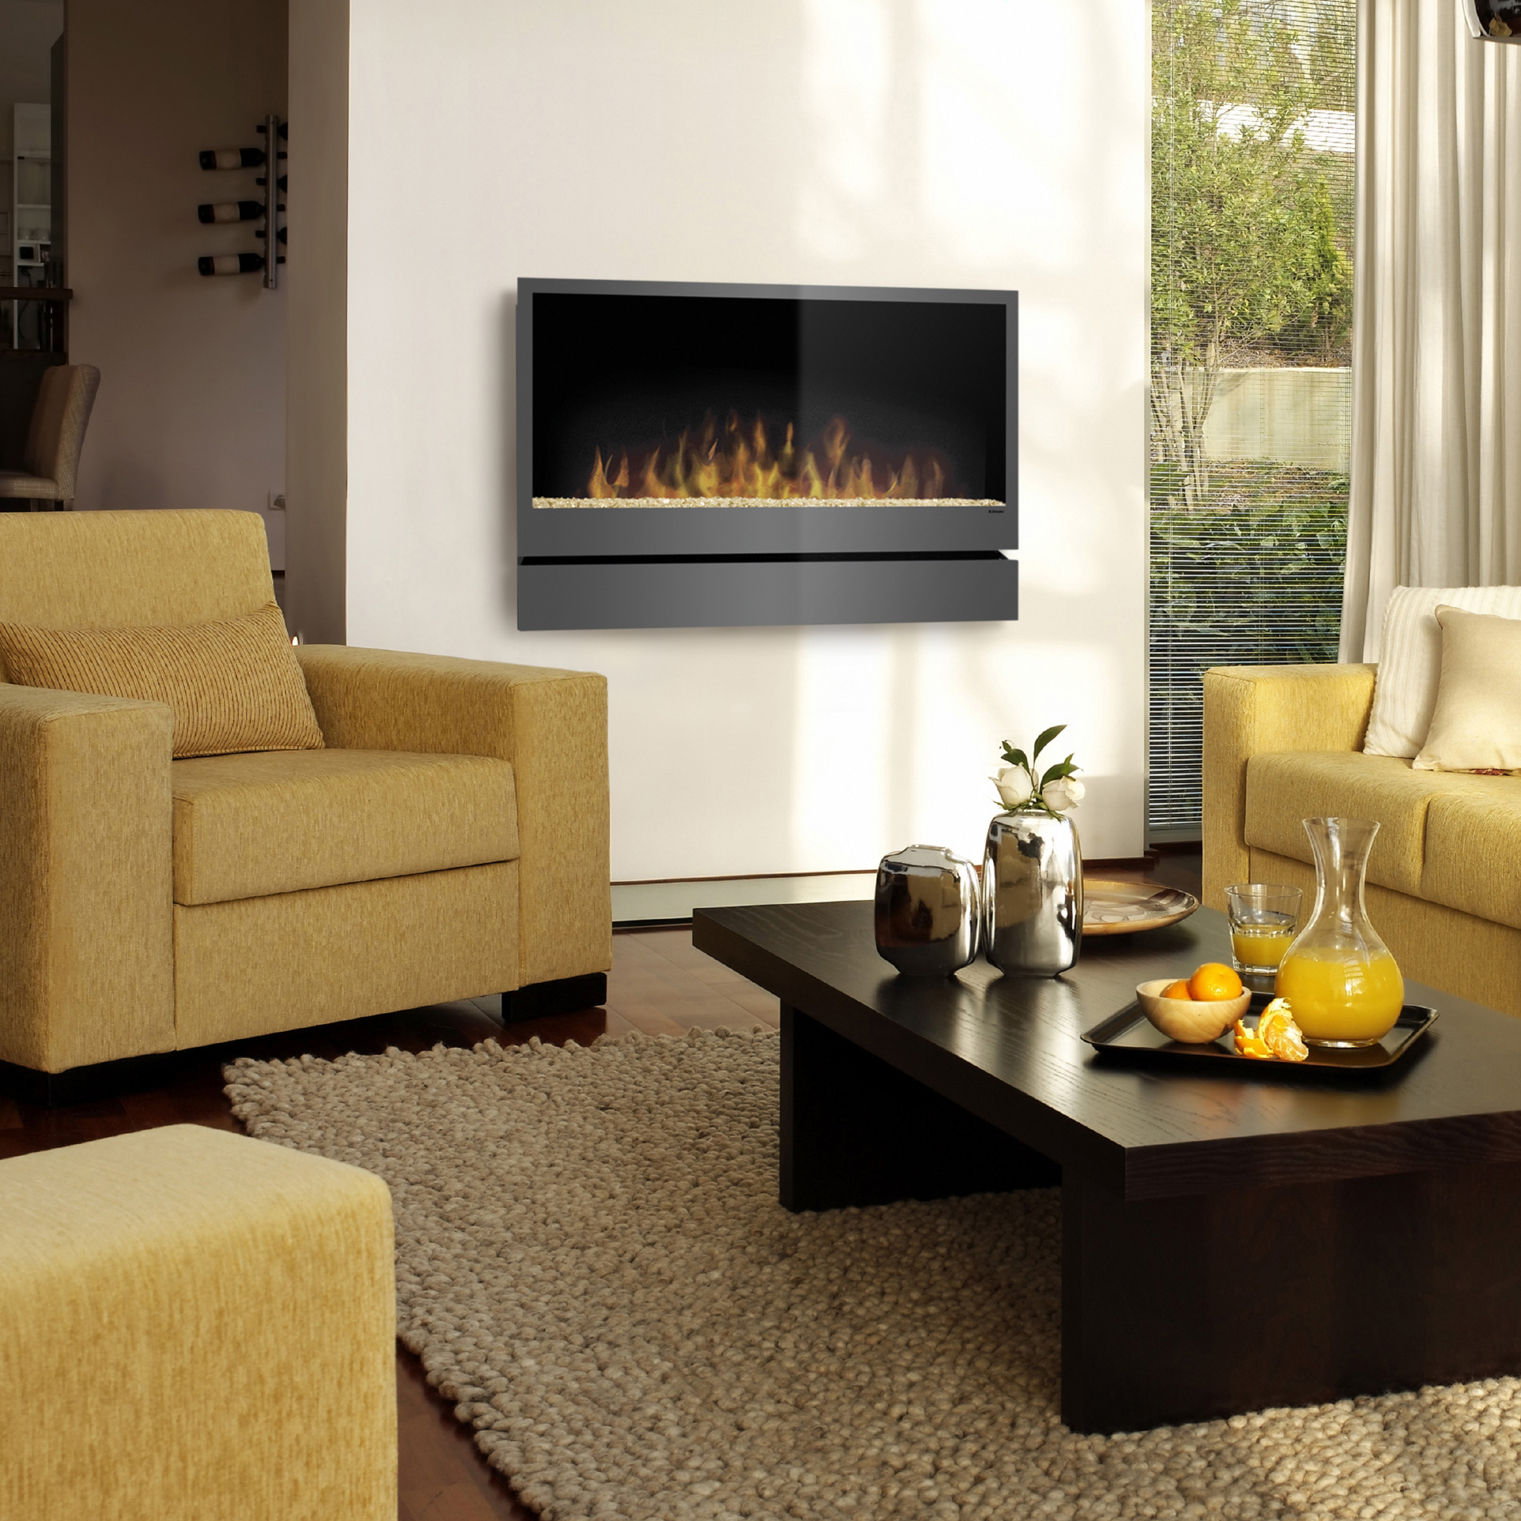 Inspiration Wall Mounted Fireplace by DImplex